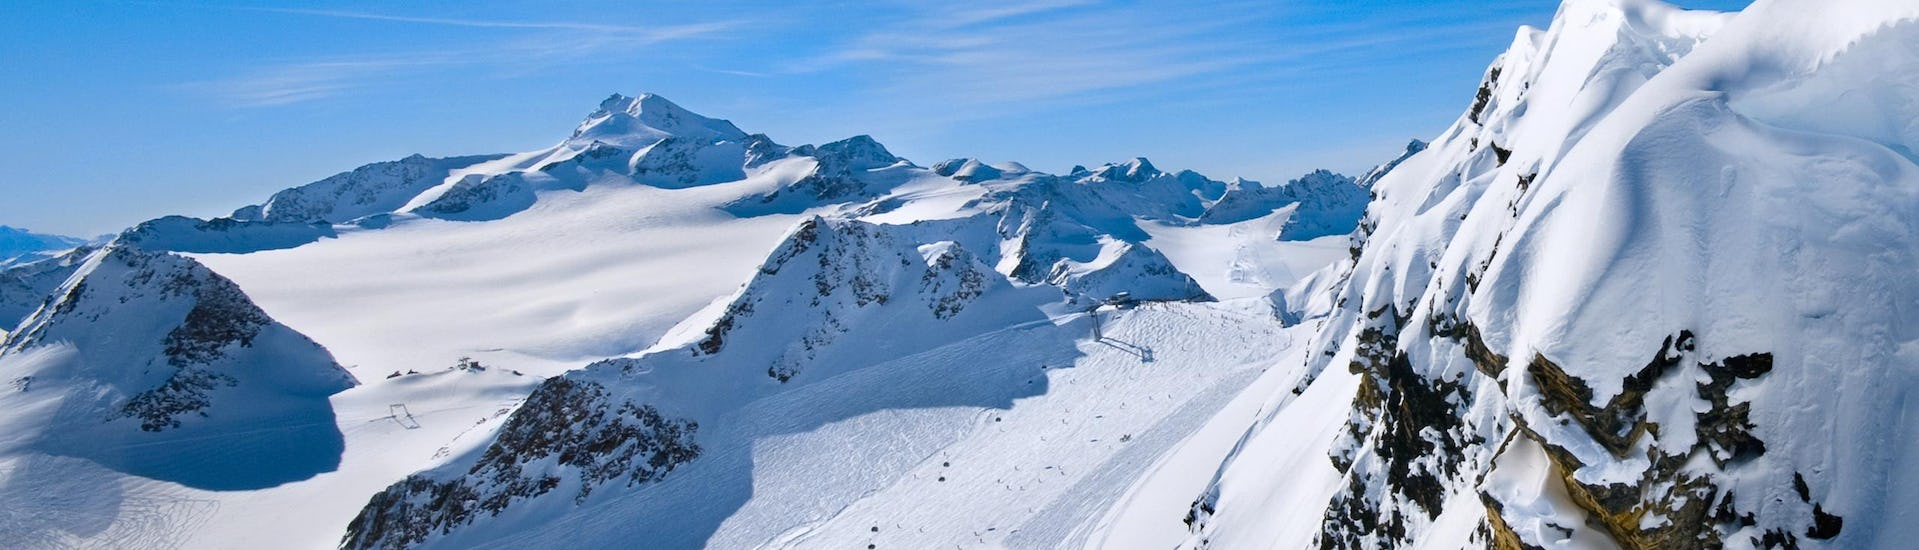 View of a snowy mountain top in a ski resort, in which ESKIMOS Ski & Snowboard School  Saas-Fee carries out ski lessons.